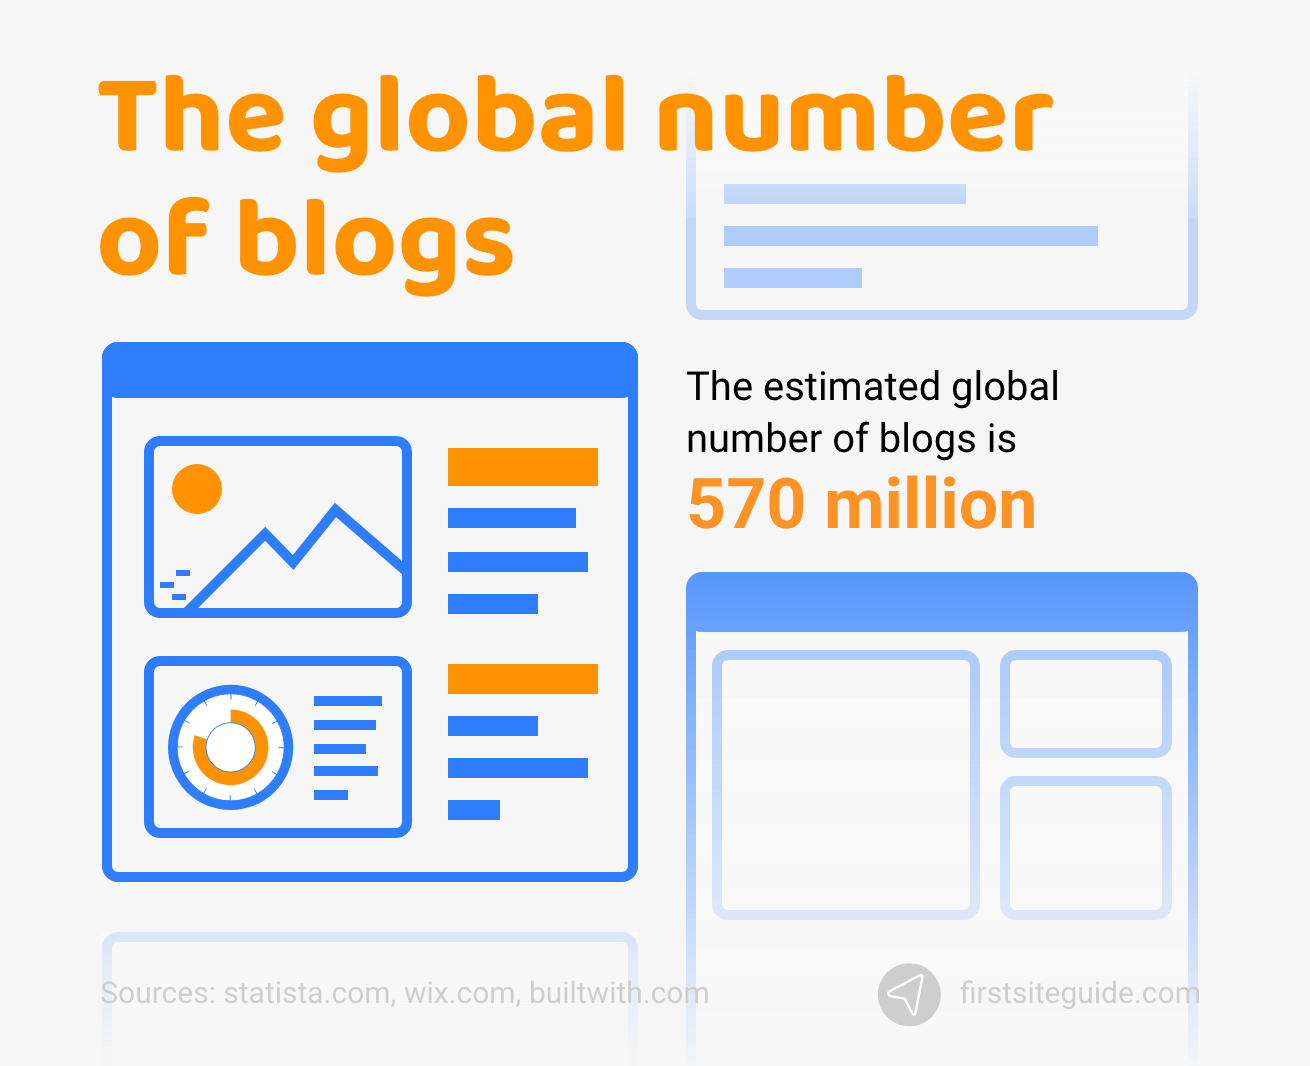 The global number of blogs